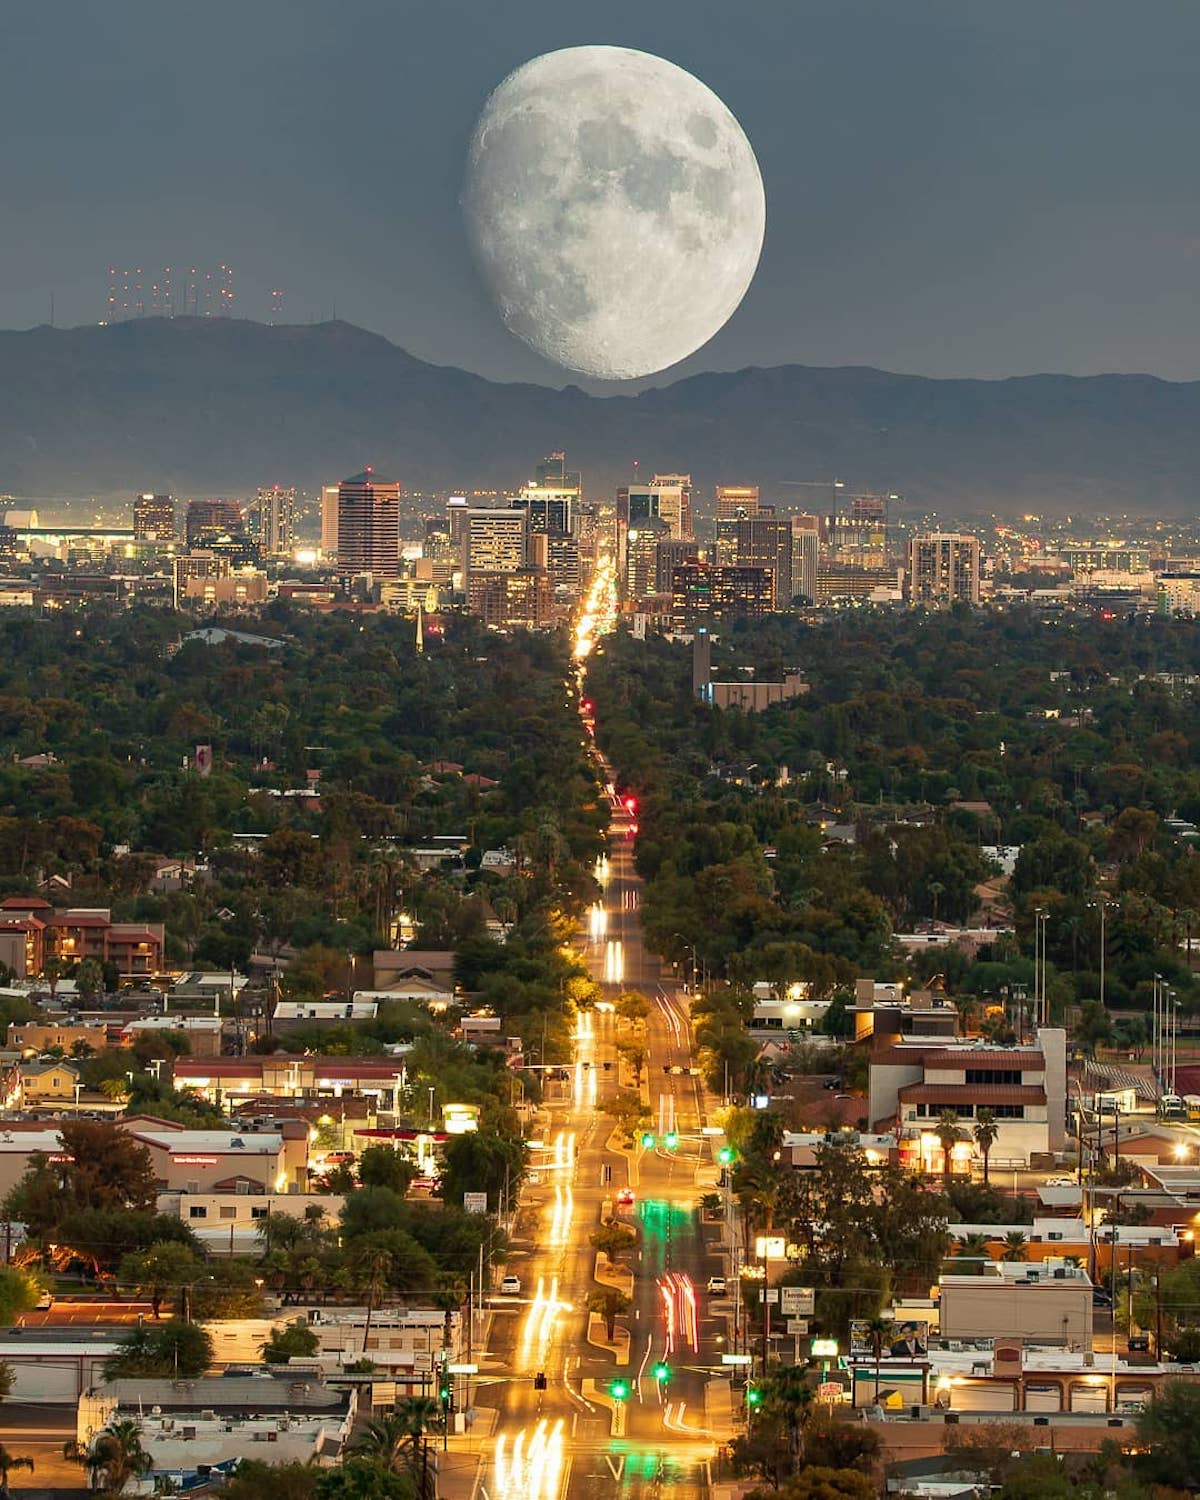 Moon Photo by Zach Cooley